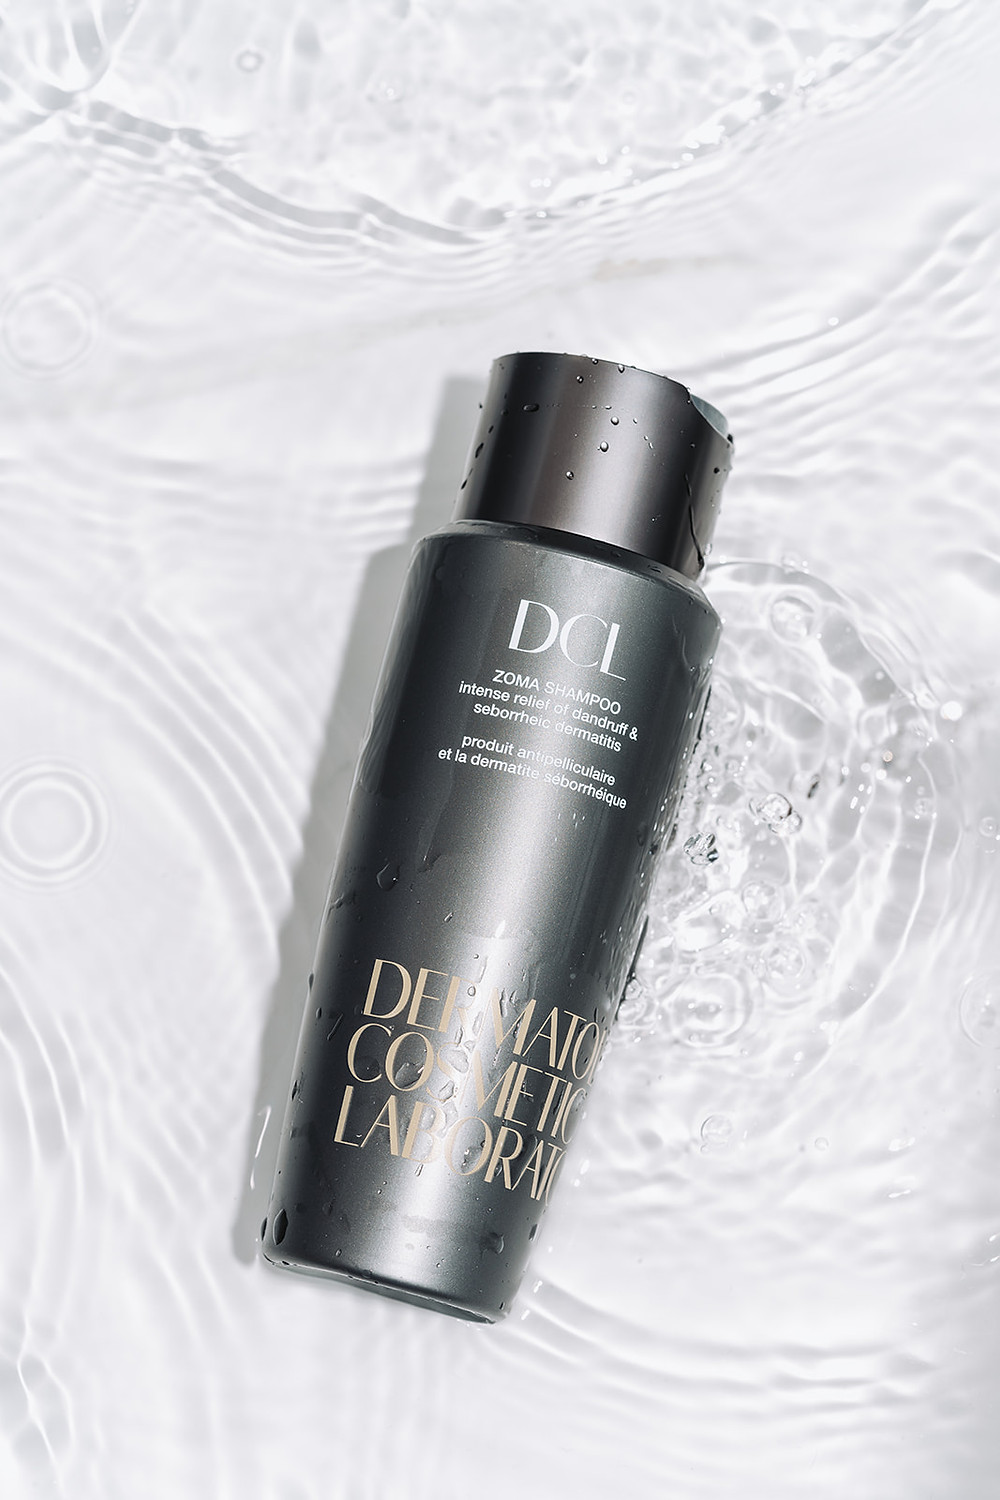 overview of skincare item as an example of using water in product photography